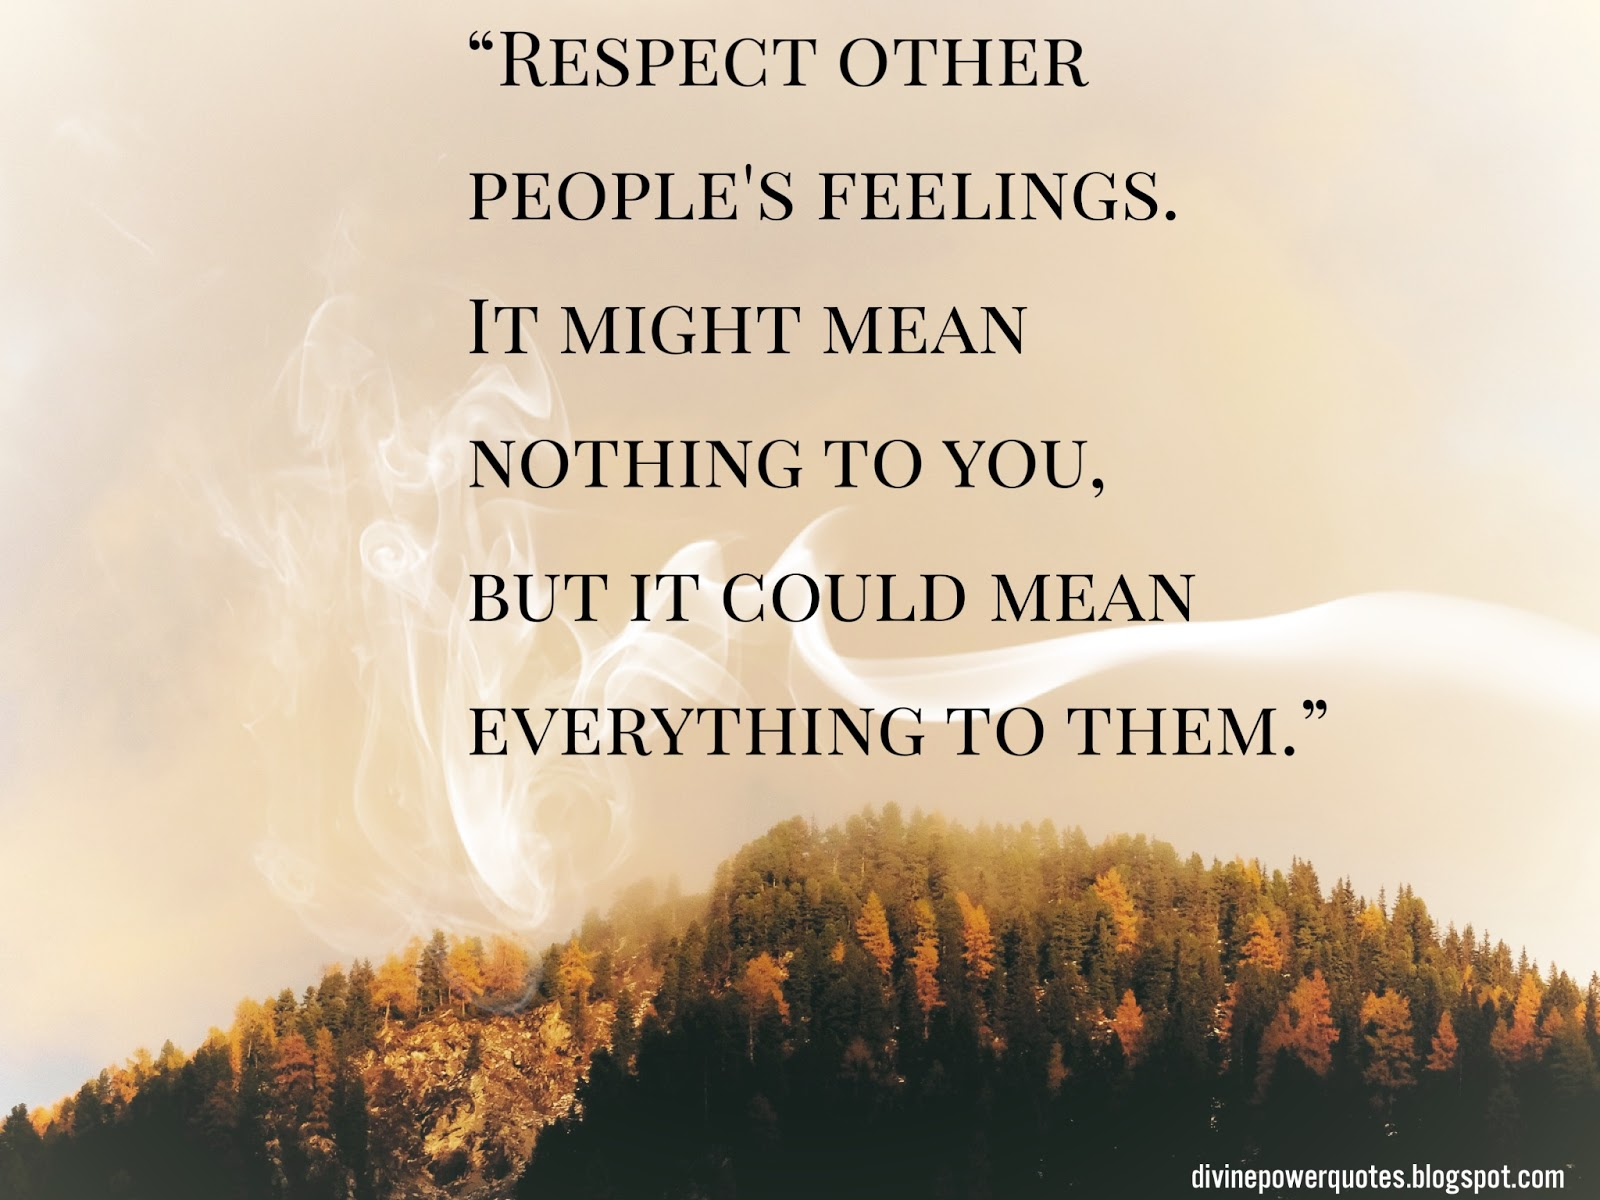 Divine Power Quotes Respect Others Inspiring Quote